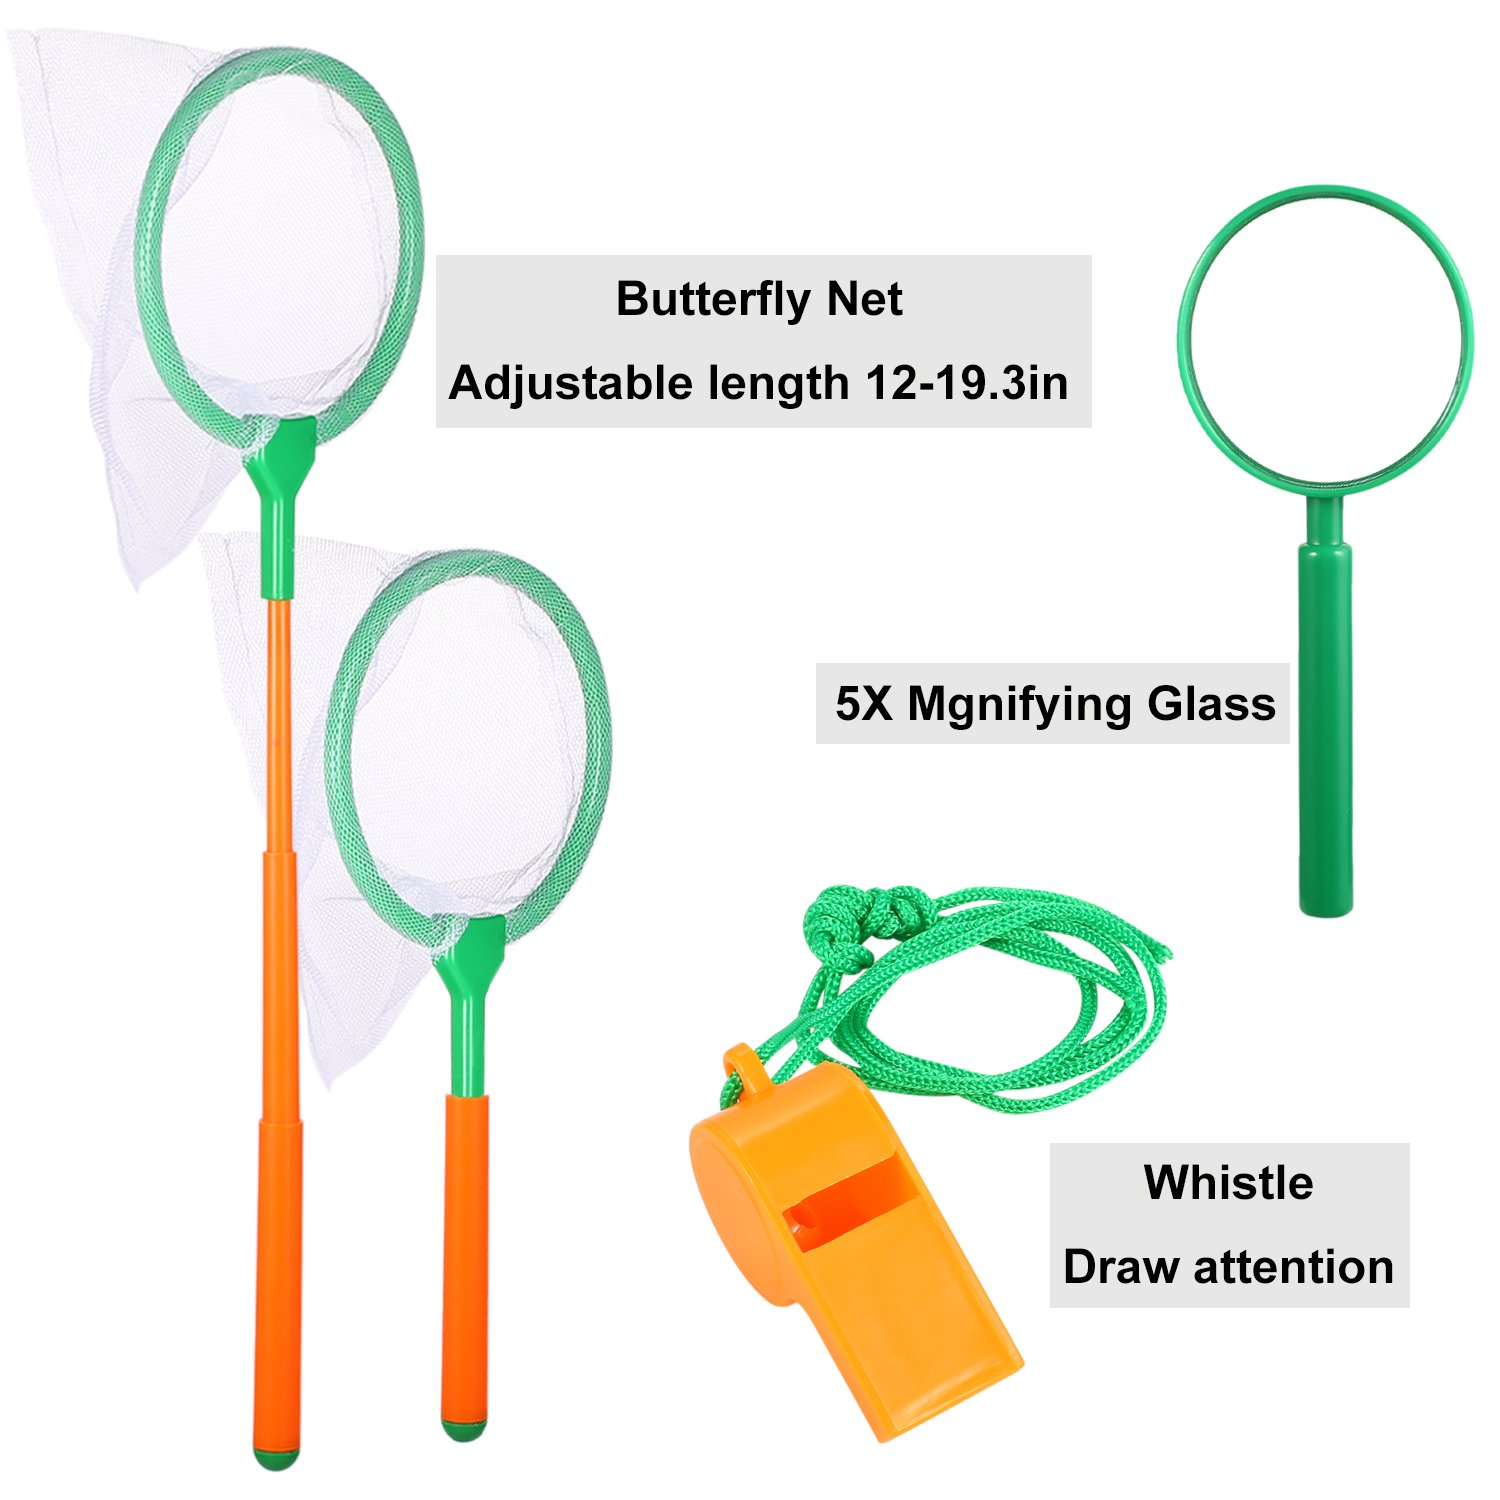 Outdoor Adventure Set for Kids - Explorer Kit, Educational Toys, Binoculars, Flashlight, Compass, Magnifying Glass, Butterfly Net, Tweezers, Bug Viewer, Whistle, Gift Set For Camping Hiking Backyard by Harlerbo (Image #6)